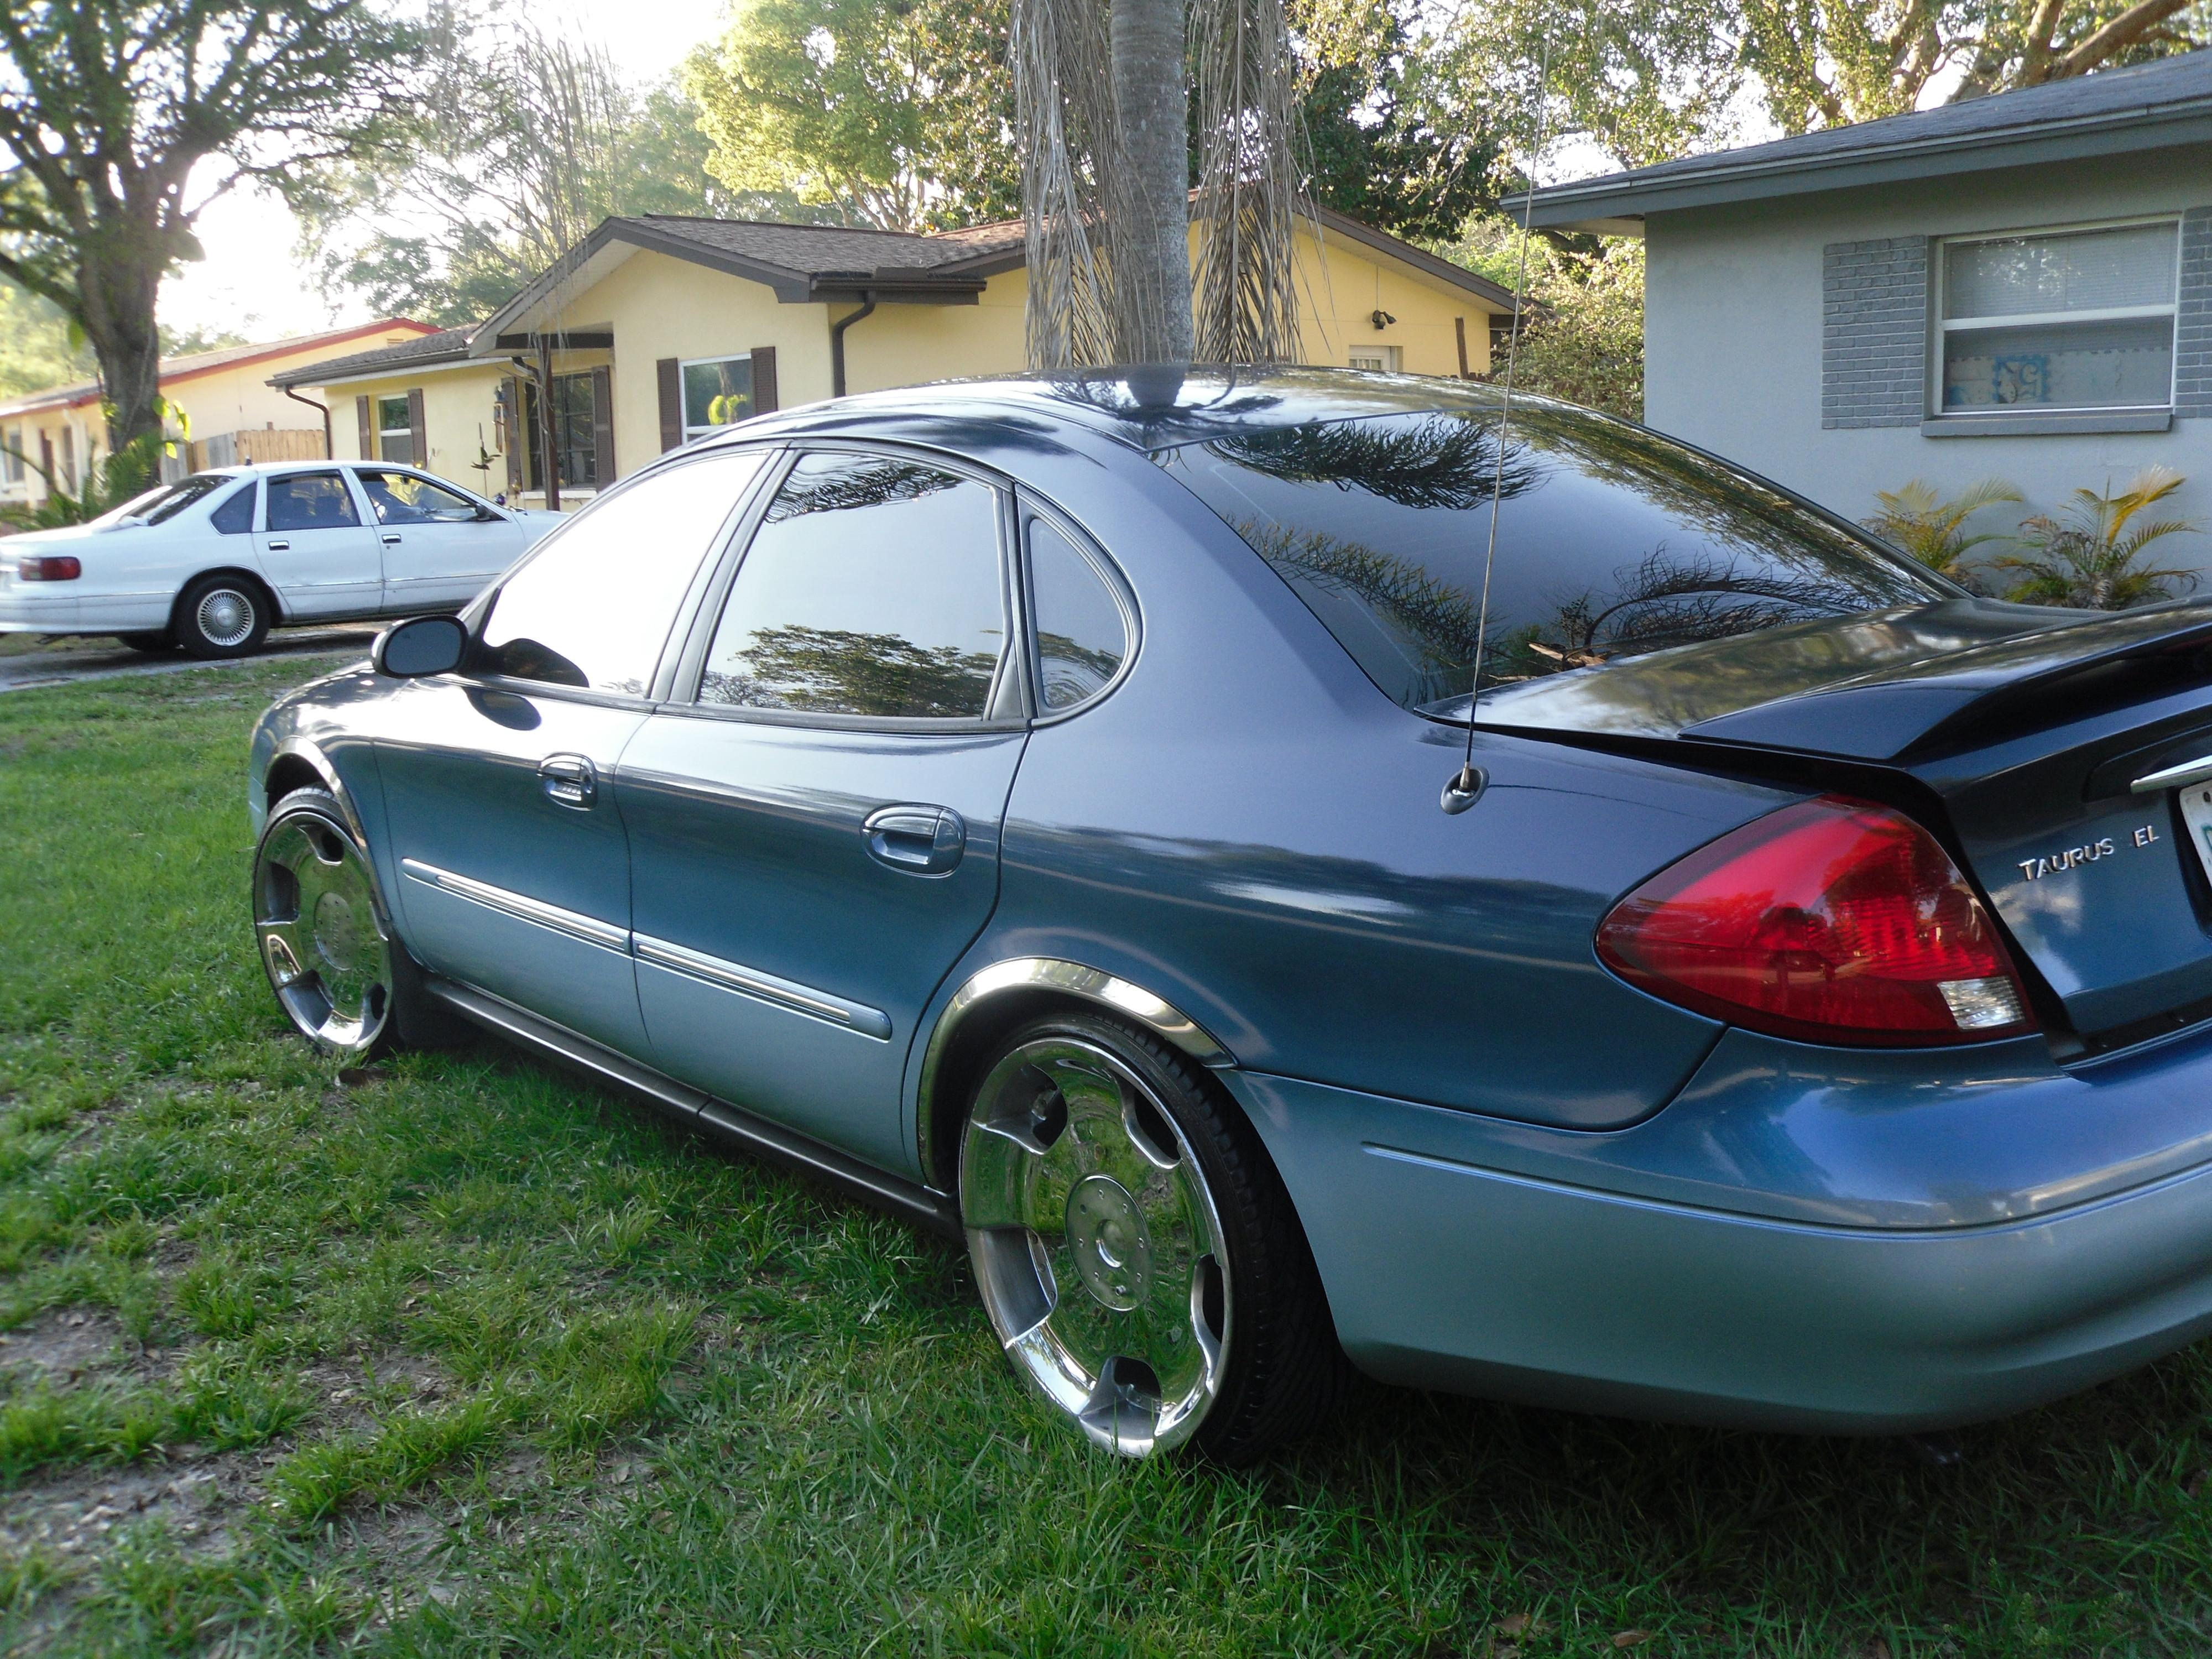 jaccbunny 2006 Ford TaurusSEL Sedan 4D Specs, Photos ...